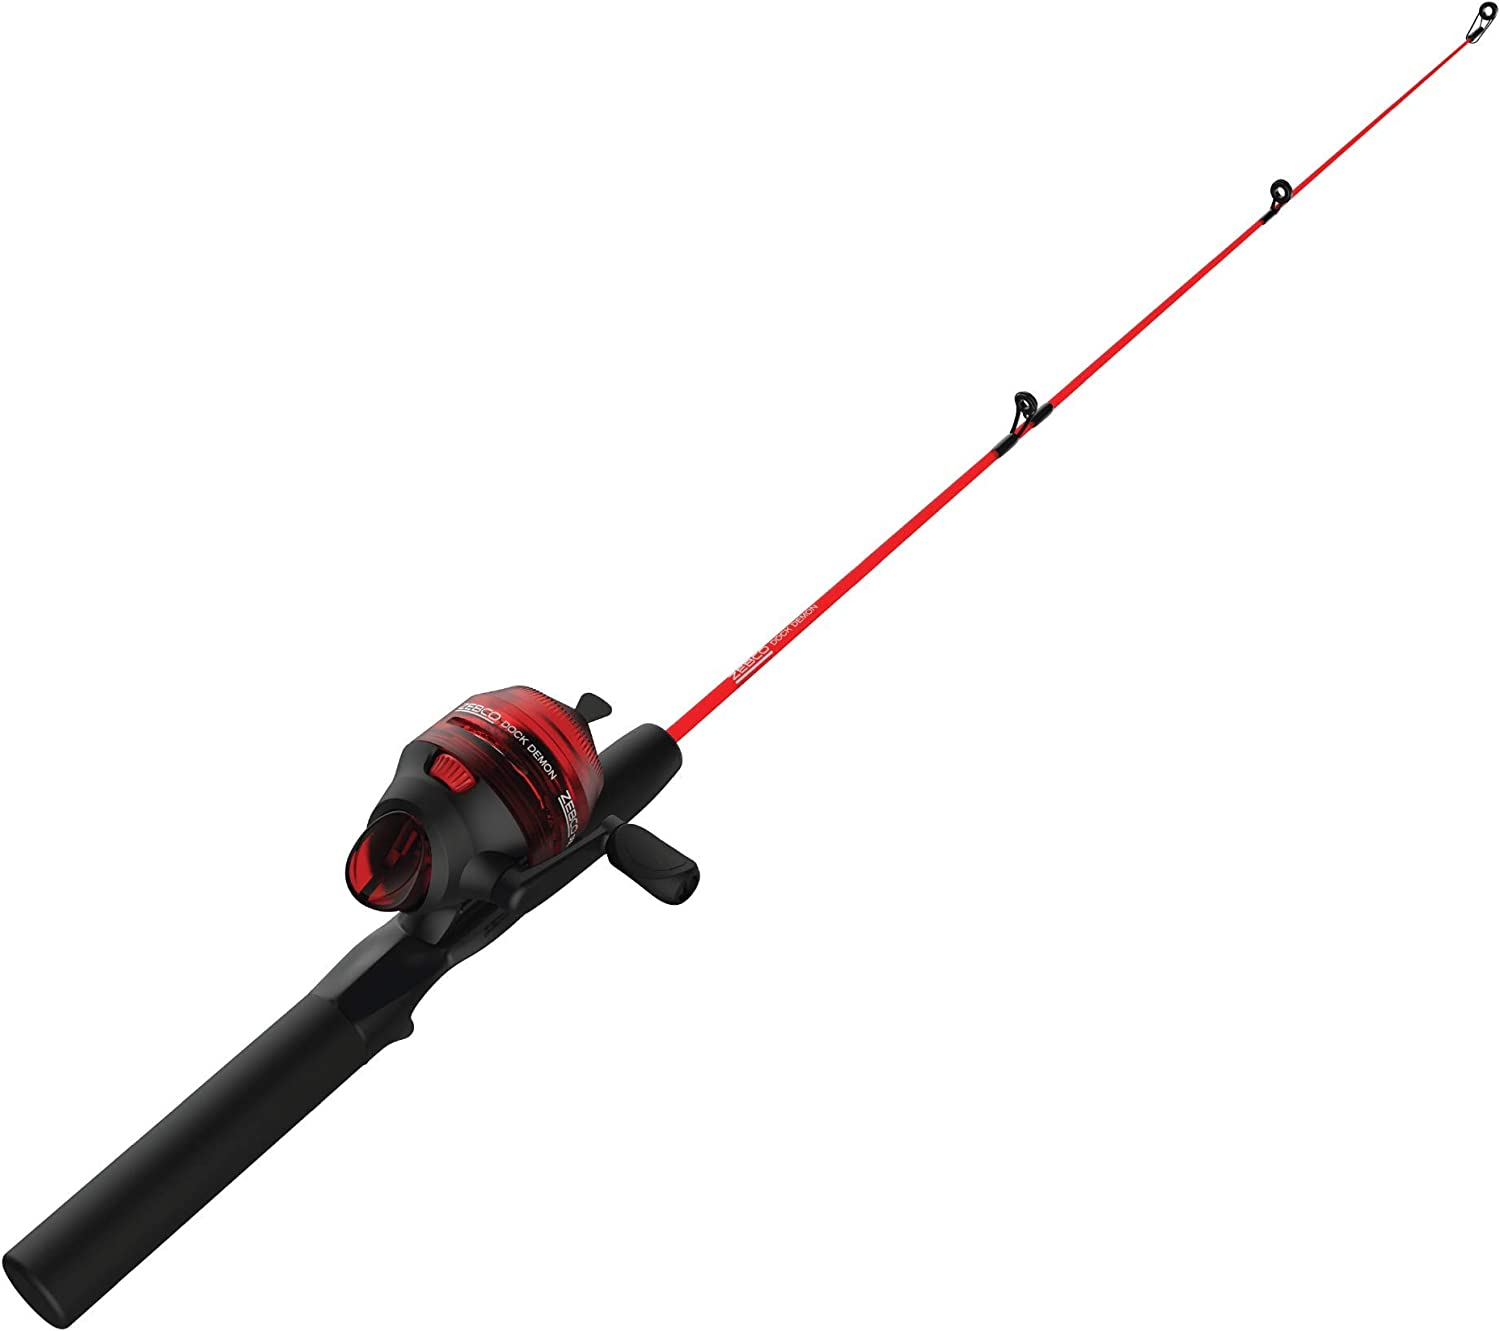 Zebco Dock Demon Spinning Reel or Spincast Reel and Fishing Rod Combo, 30-Inch Durable Fiberglass Rod, QuickSet Anti-Reverse Fishing Reel